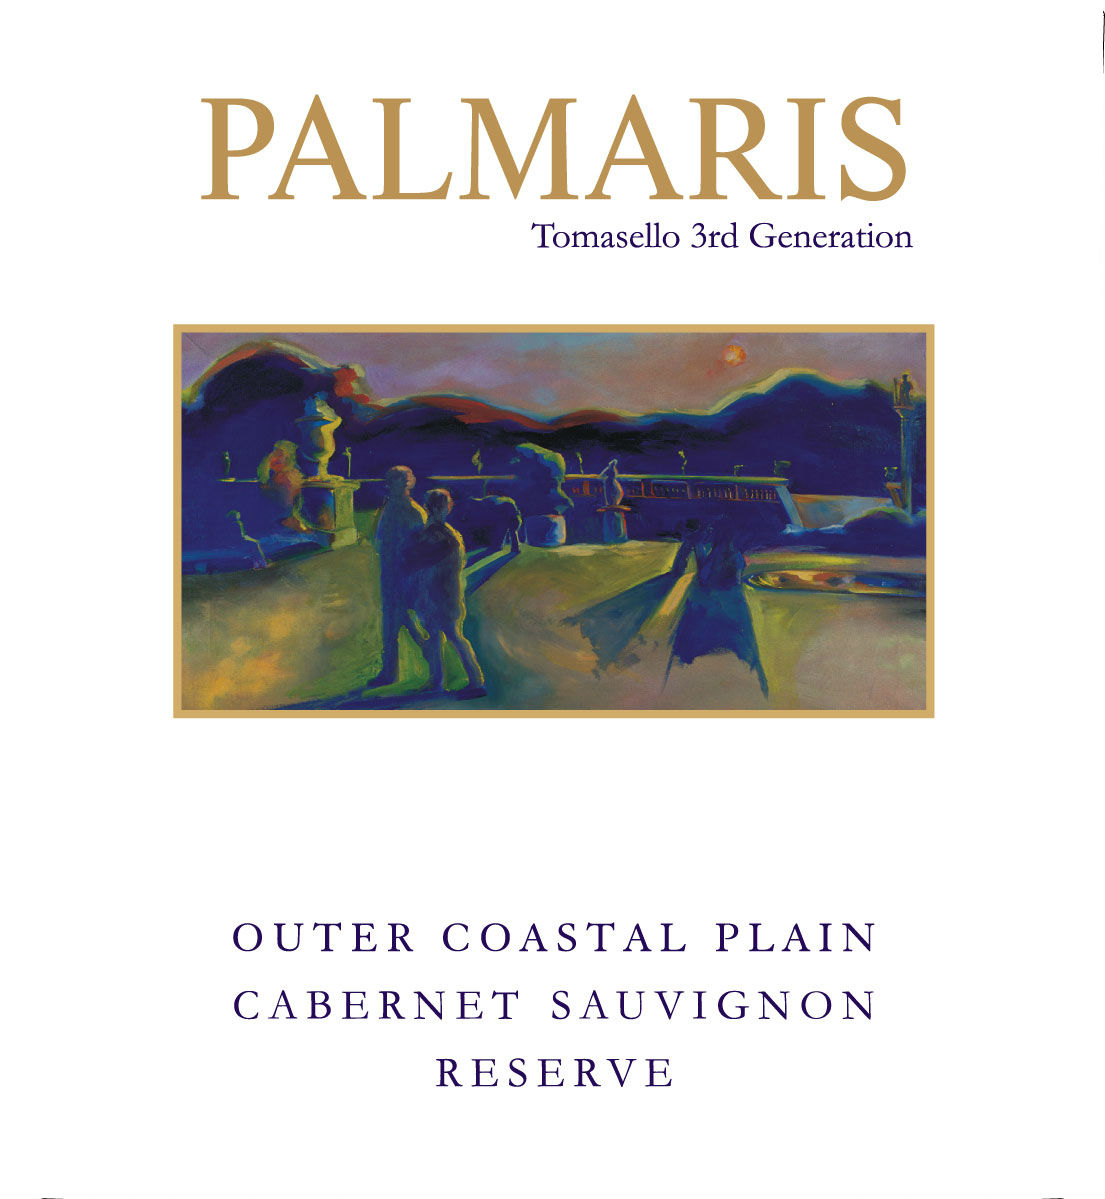 Product Image for Palmaris 2012 Outer Coastal Plain Cabernet Sauvignon Reserve